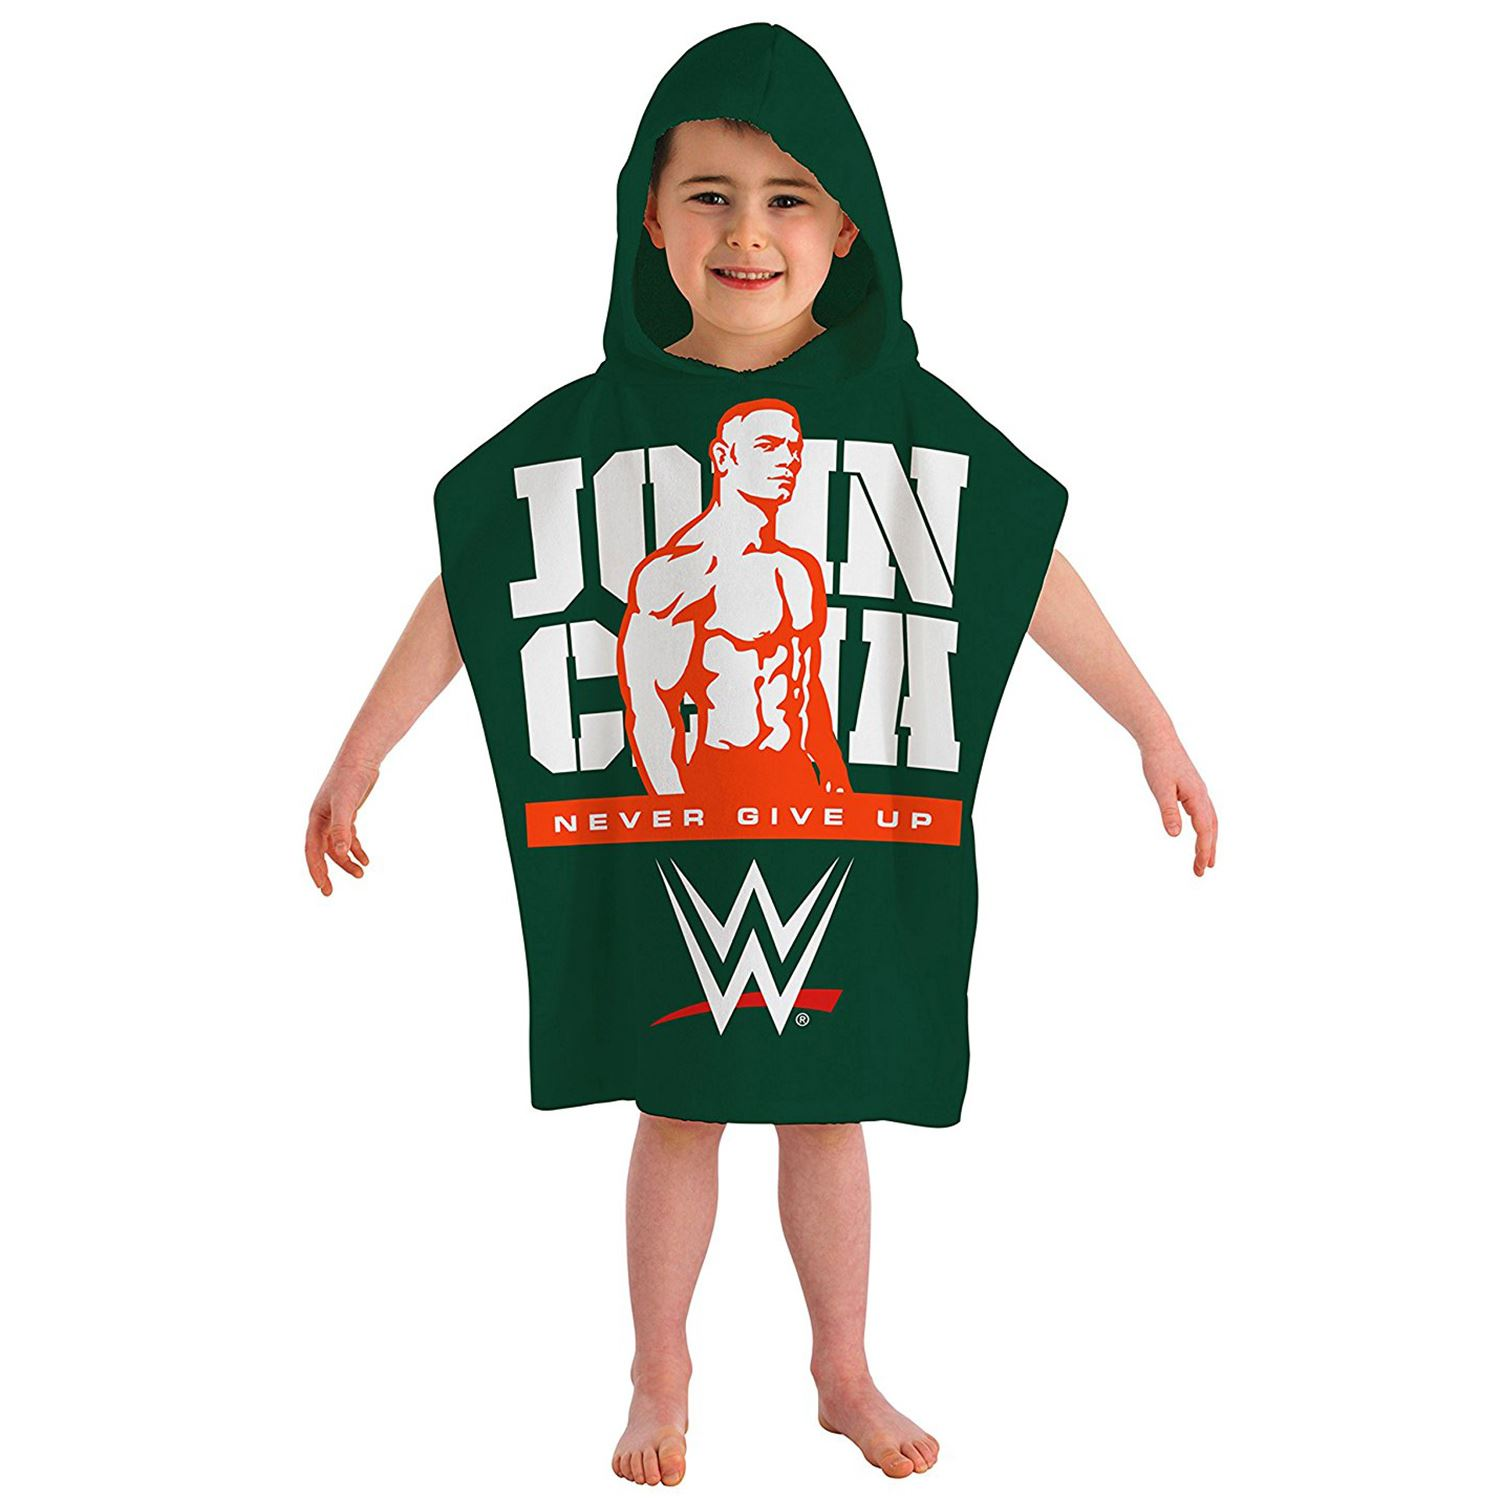 wwe john cena kapuzen poncho handtuch strand kinder jungen badezimmer ebay. Black Bedroom Furniture Sets. Home Design Ideas